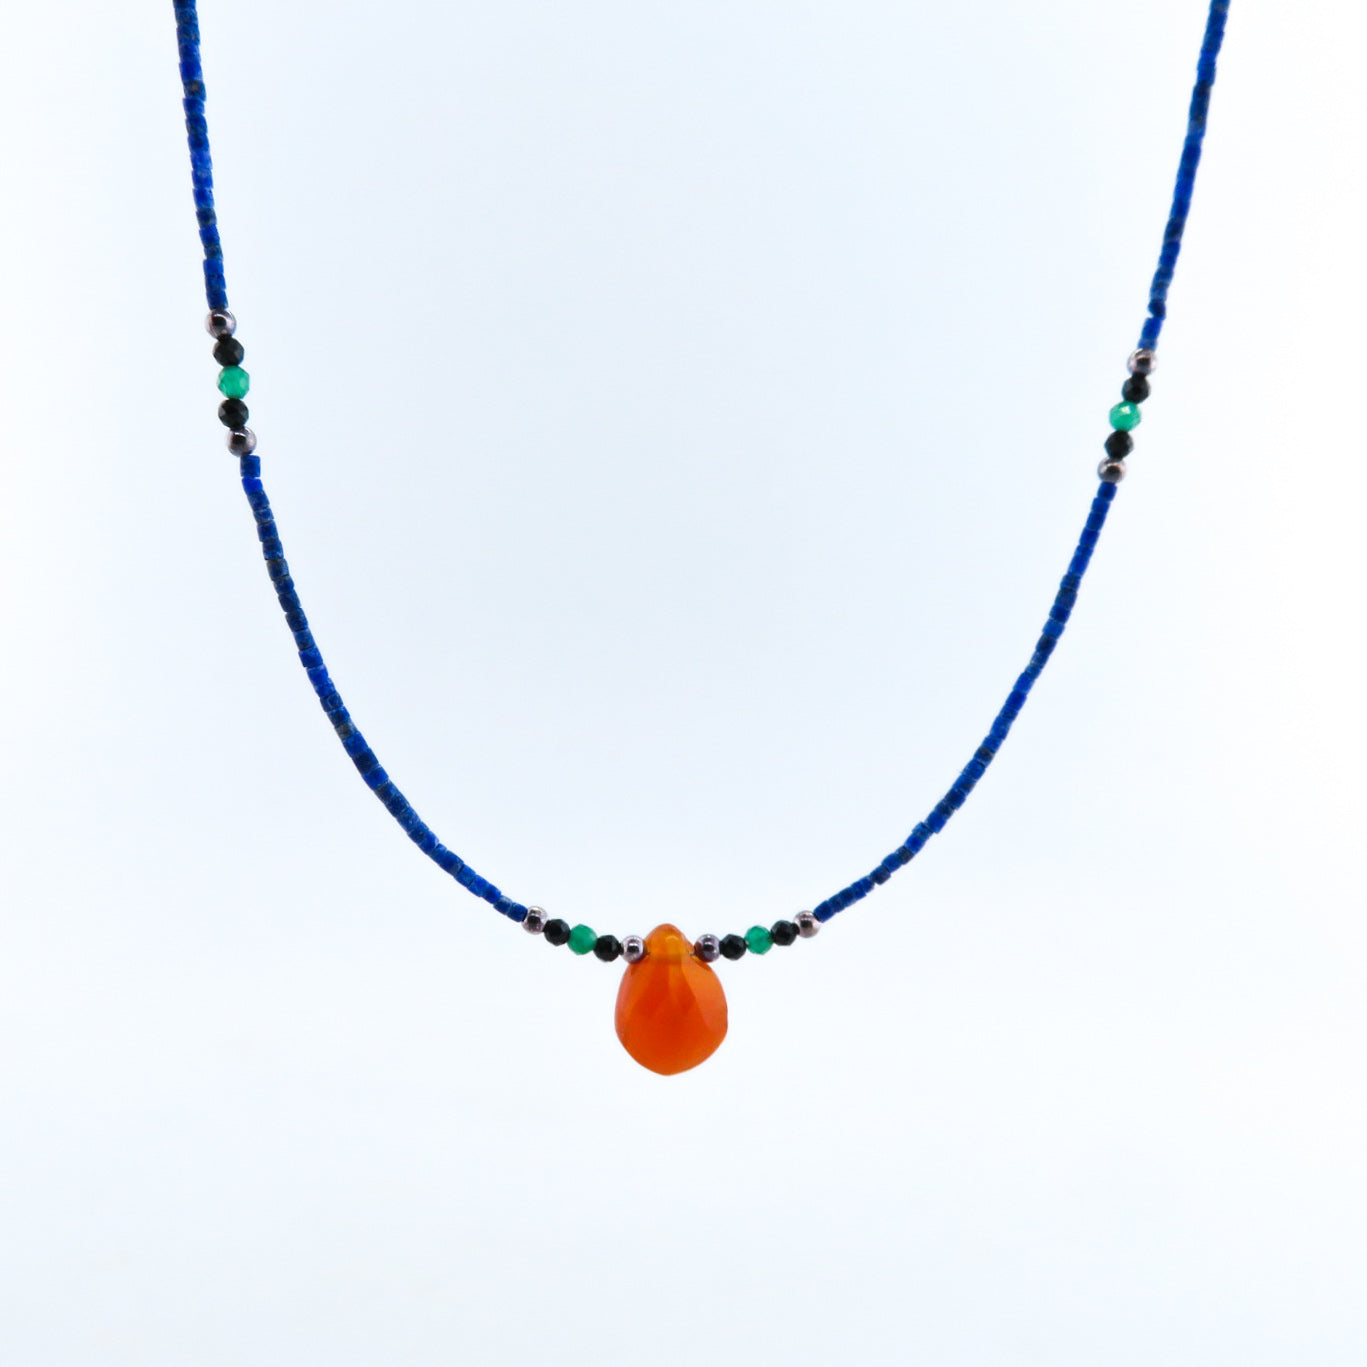 Lapis Lazuli Necklace with Carnelian, Green Onyx, Black Onyx and Silver Beads